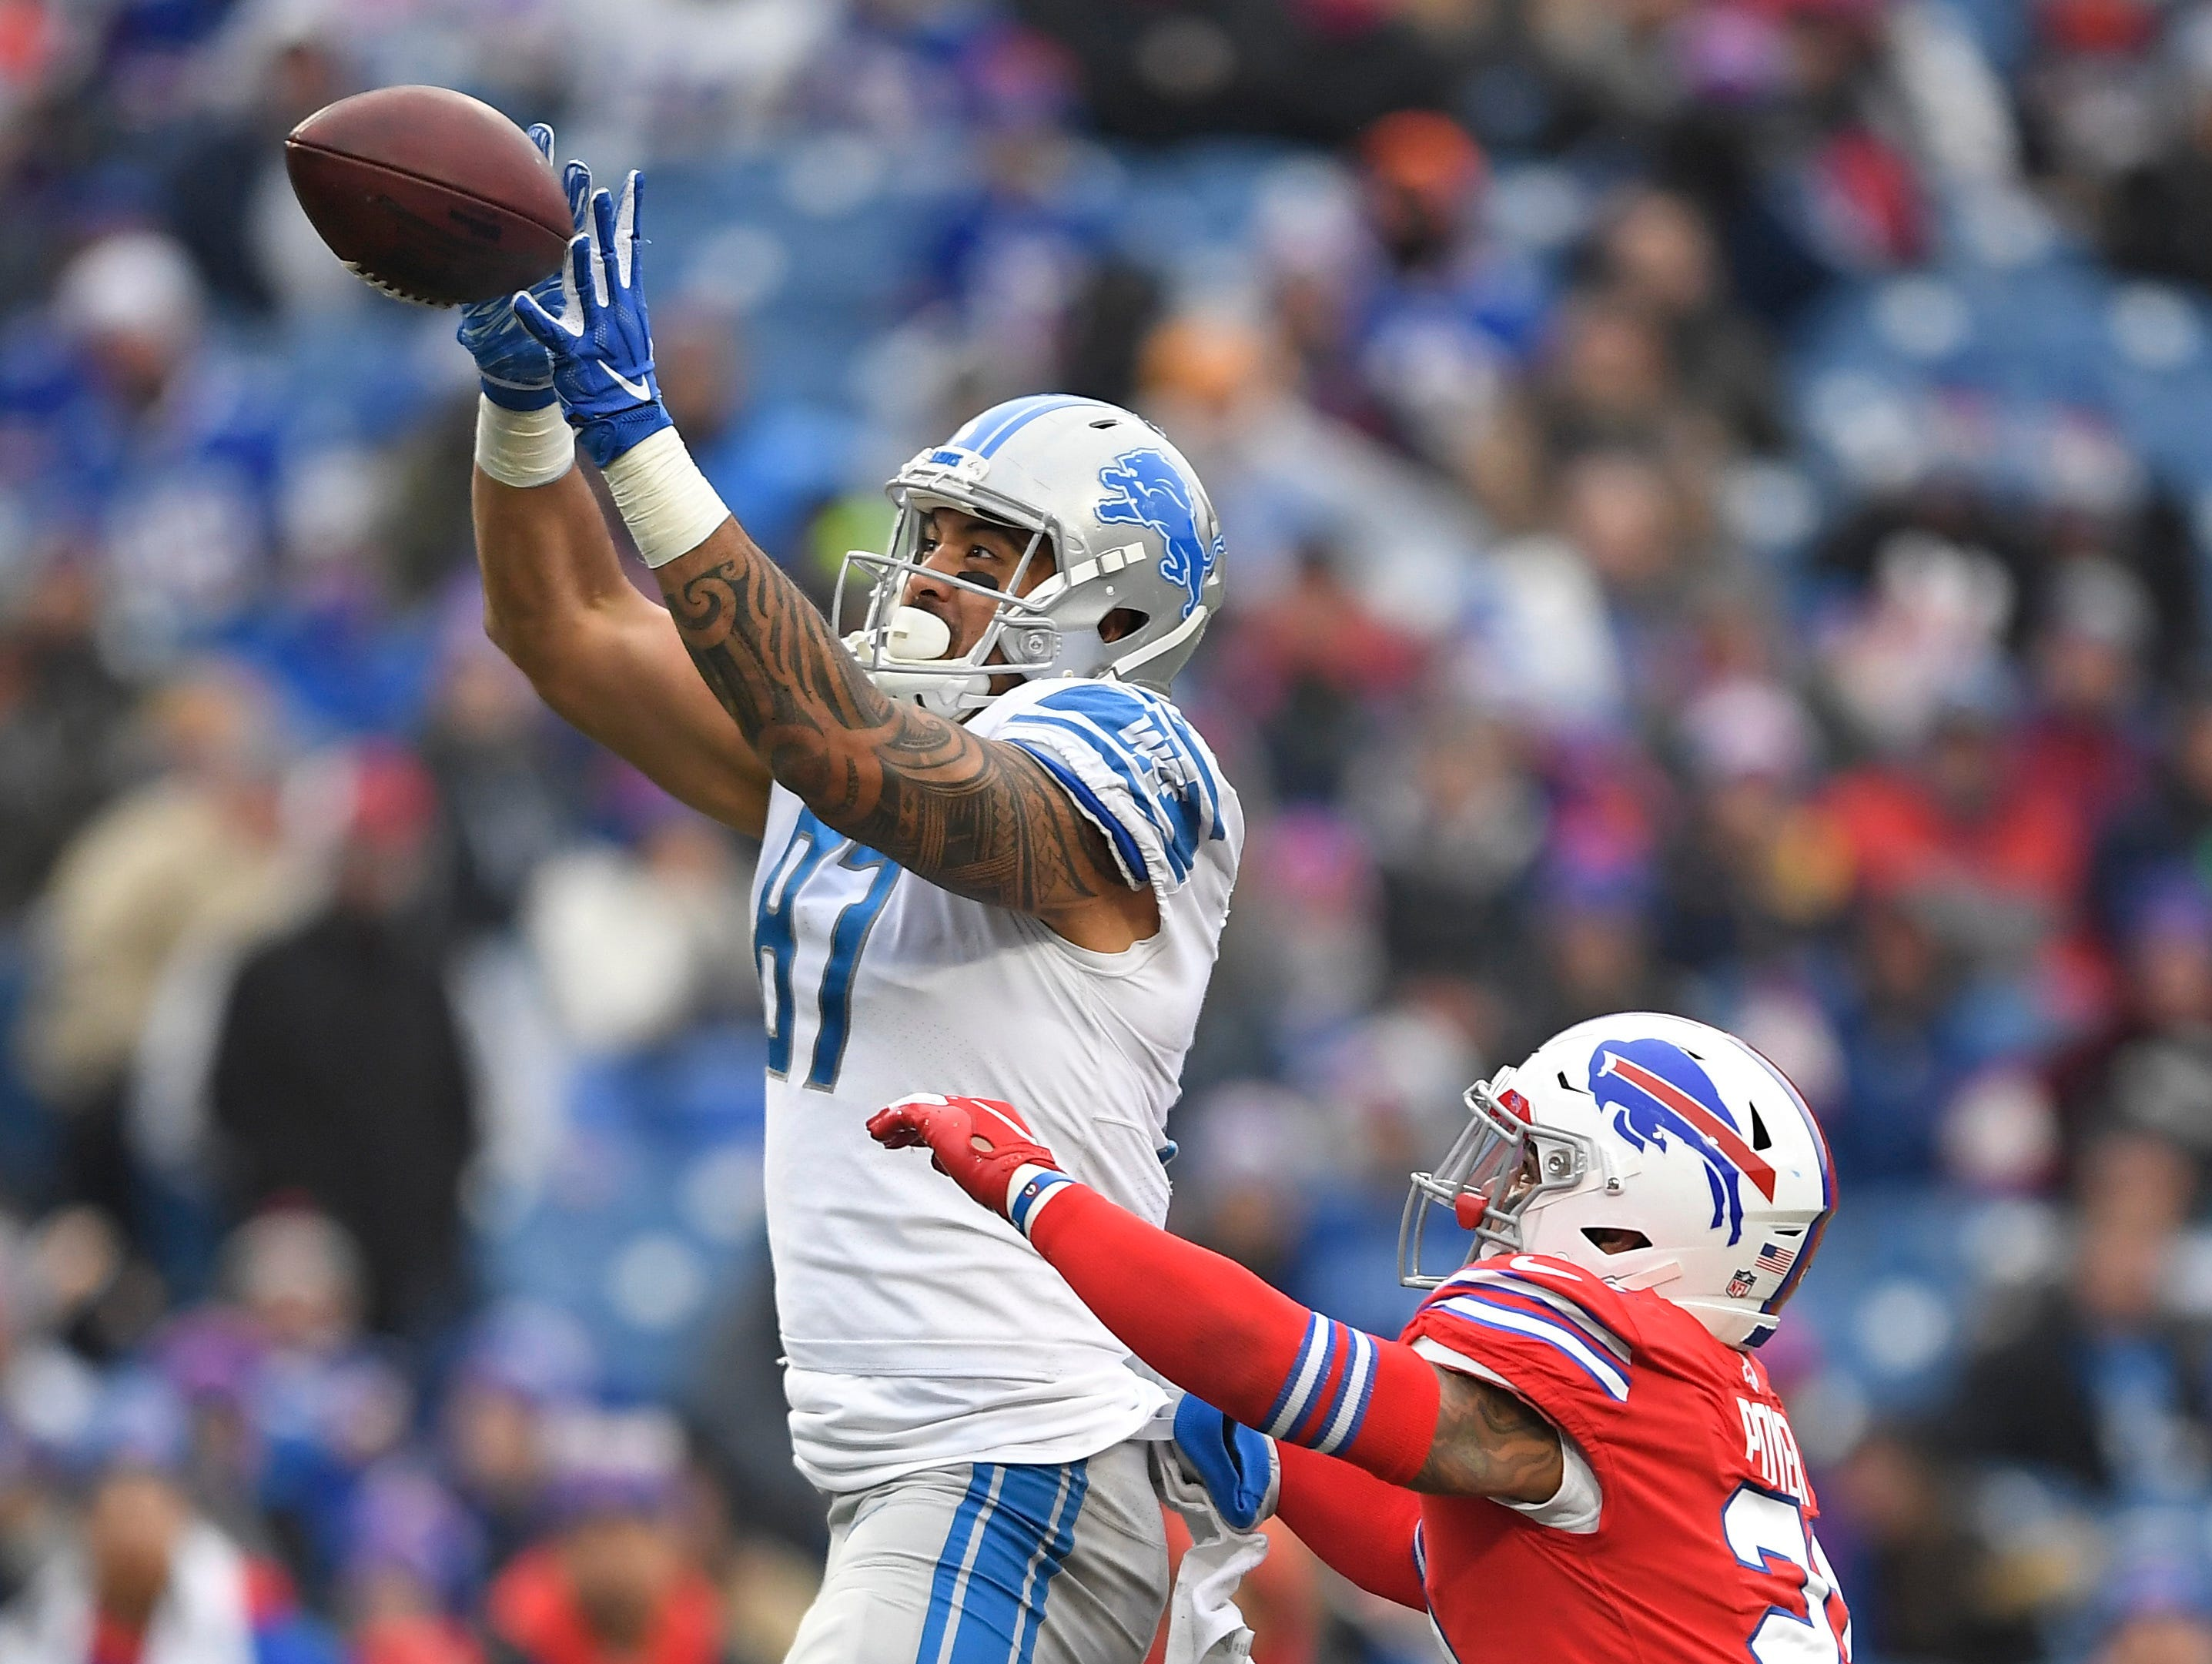 Detroit Lions tight end Levine Toilolo (87) catches a pass under pressure from Buffalo Bills strong safety Micah Hyde (23) during the second half.